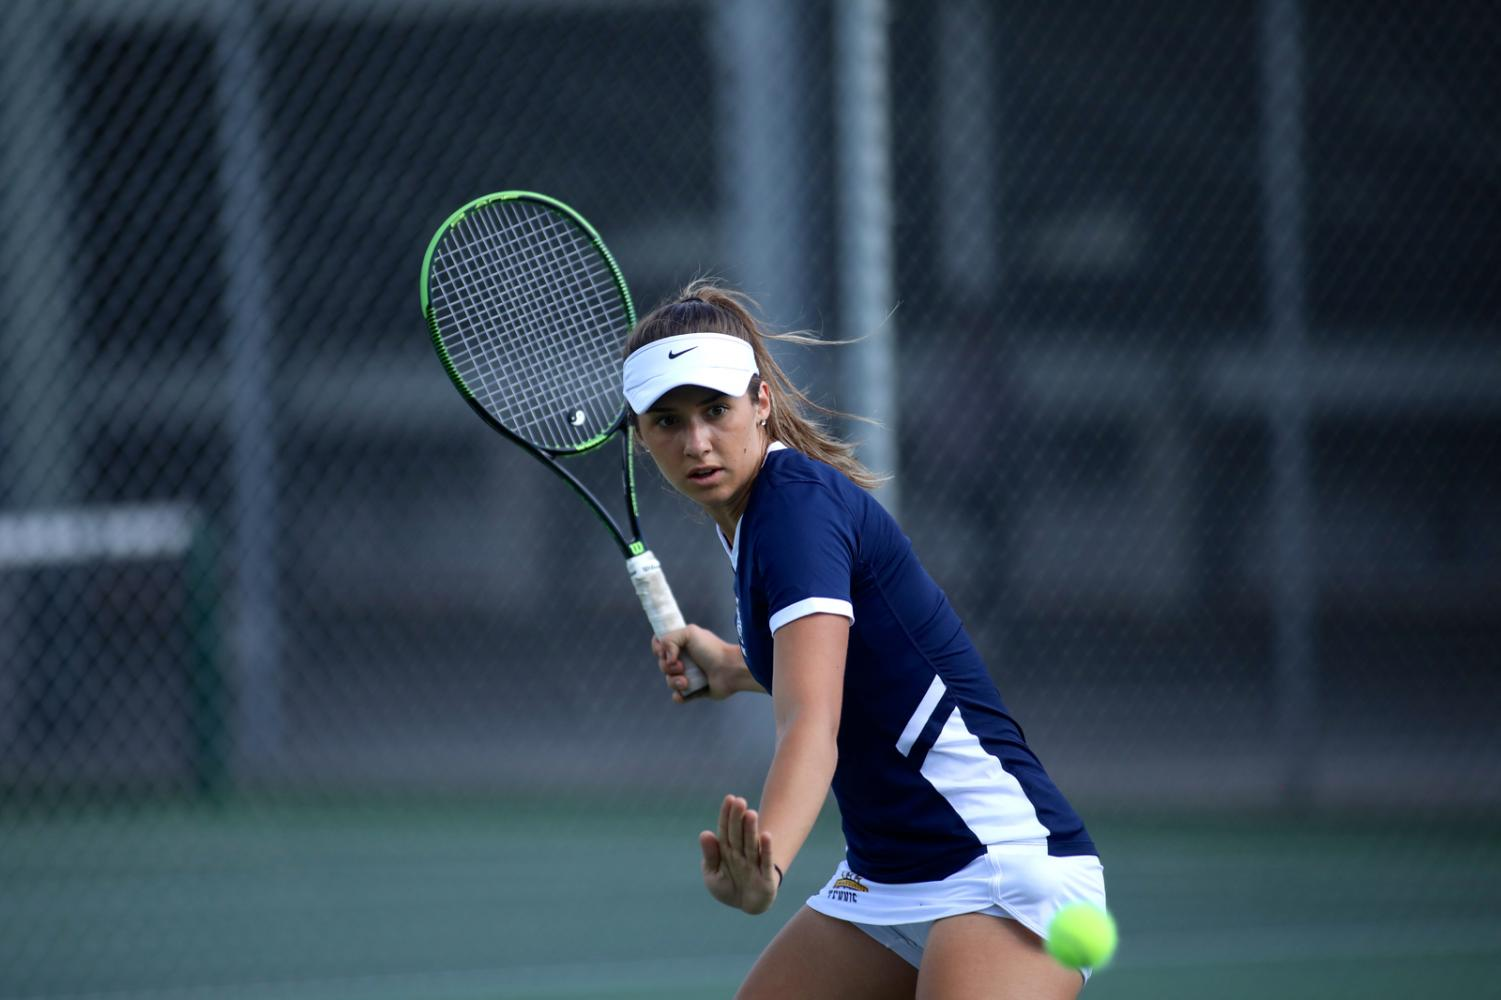 Freshman Natalija Popovic has been competing for the No.1 doubles spot this year (Photo courtesy Marquette Athletics).